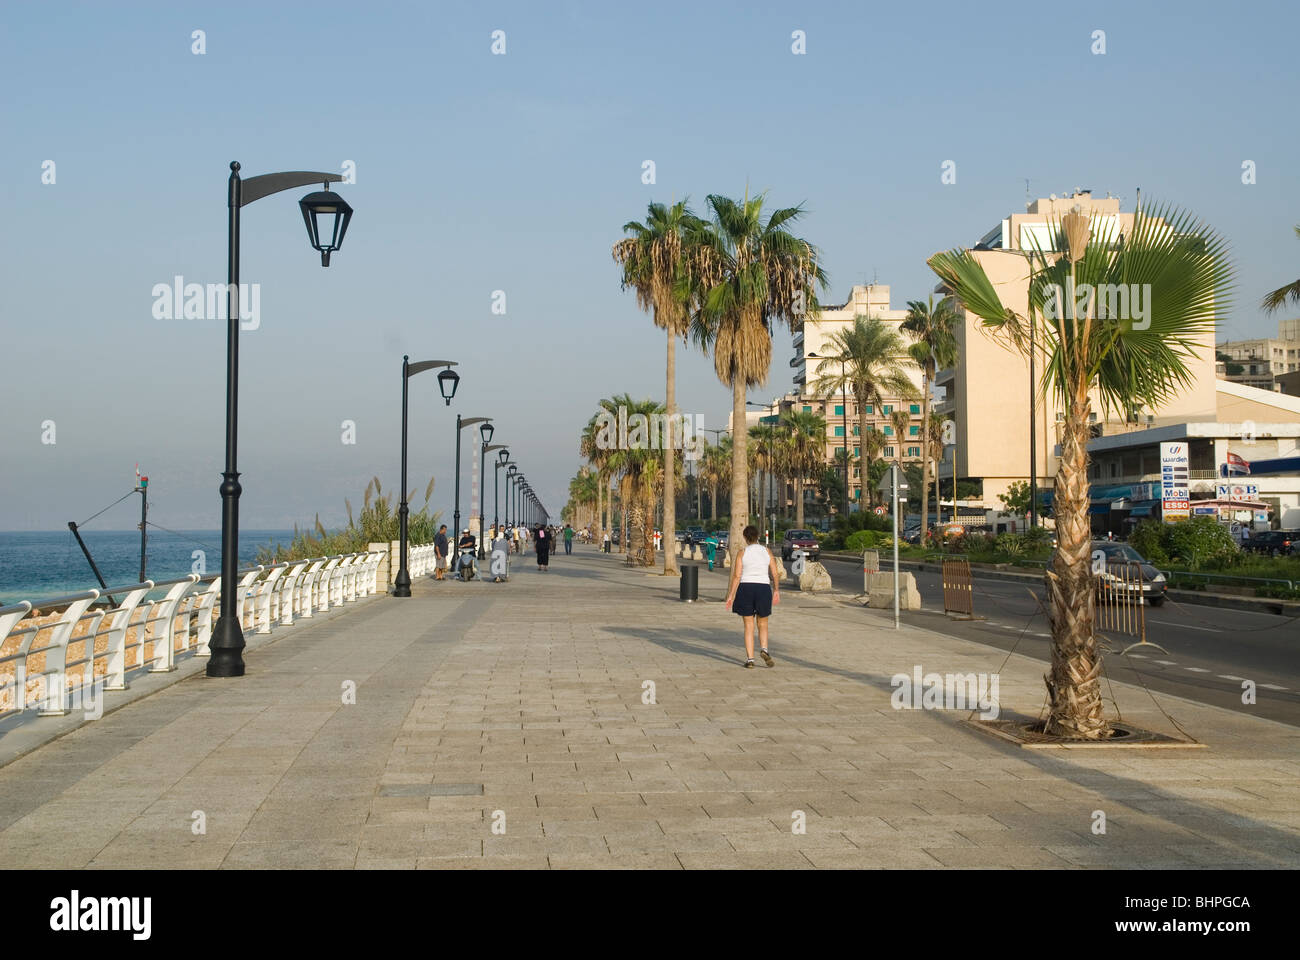 Promenade by the Mediterranean sea in Manara Beirut Lebanon Middle East - Stock Image